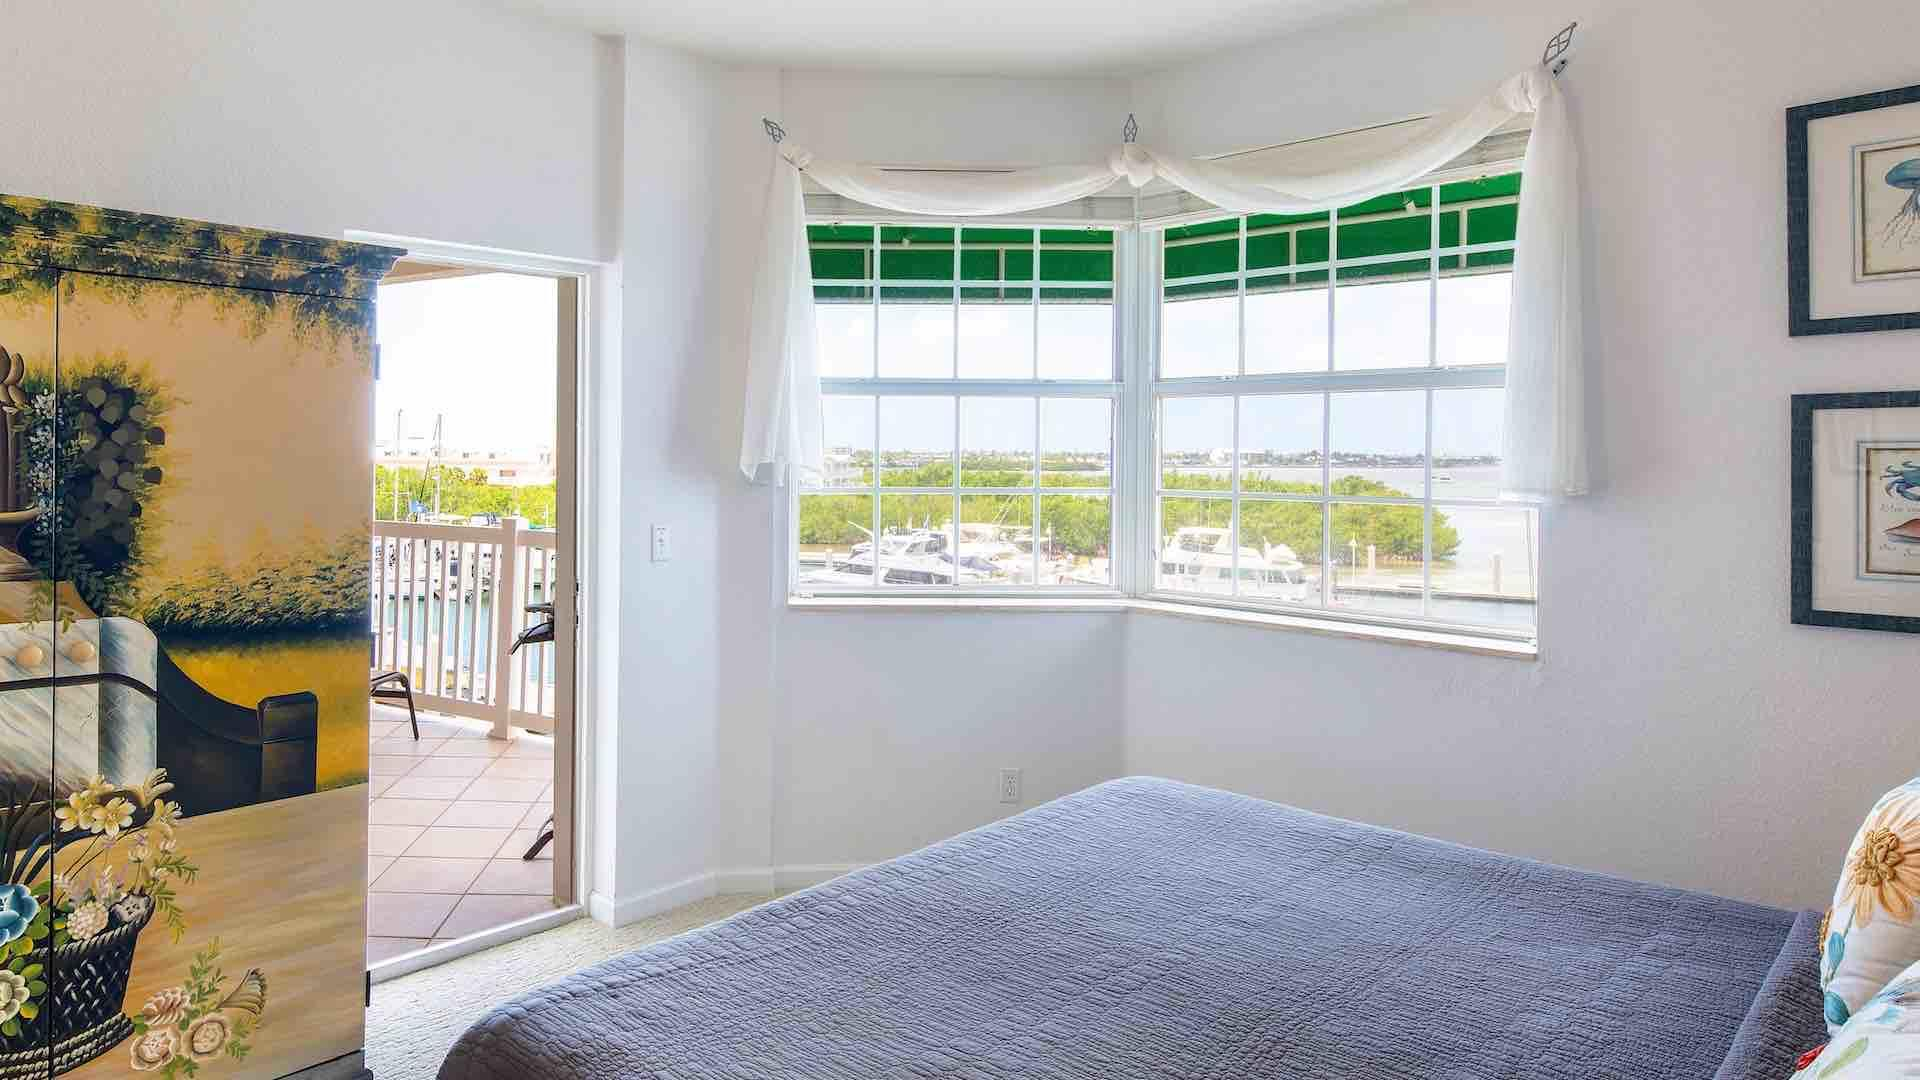 Access the main balcony directly from the master bedroom...